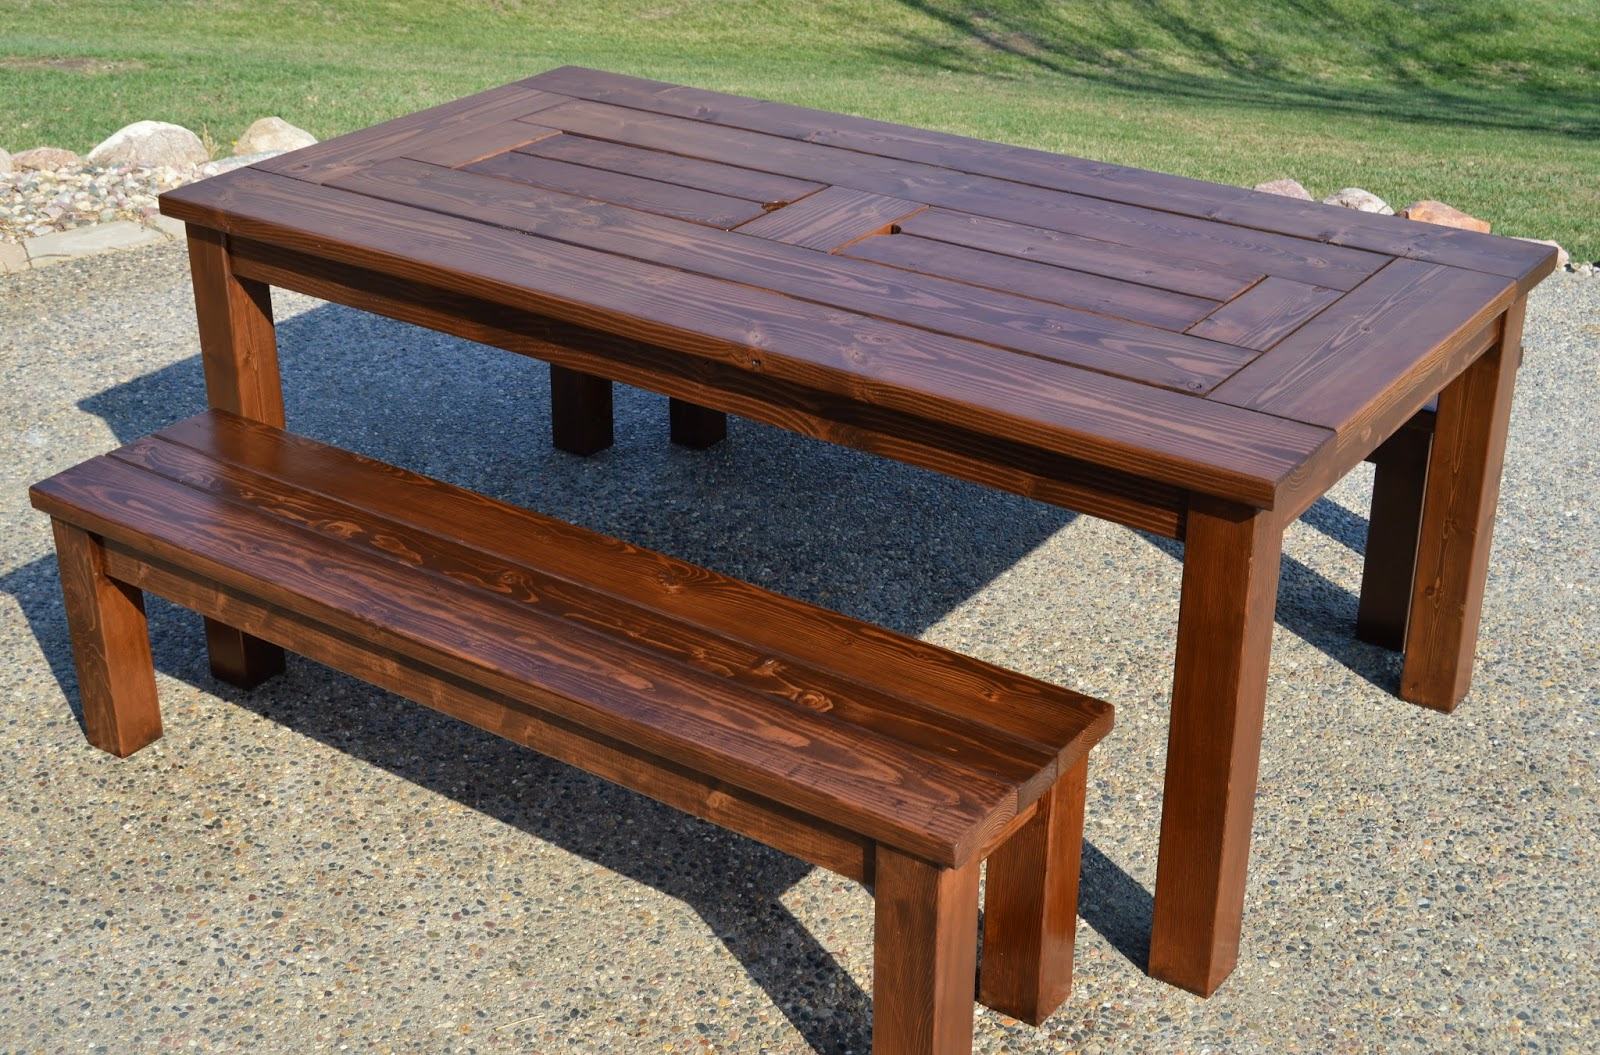 Perfect Patio Party Table With Built In Beer/Wine Ice Coolers